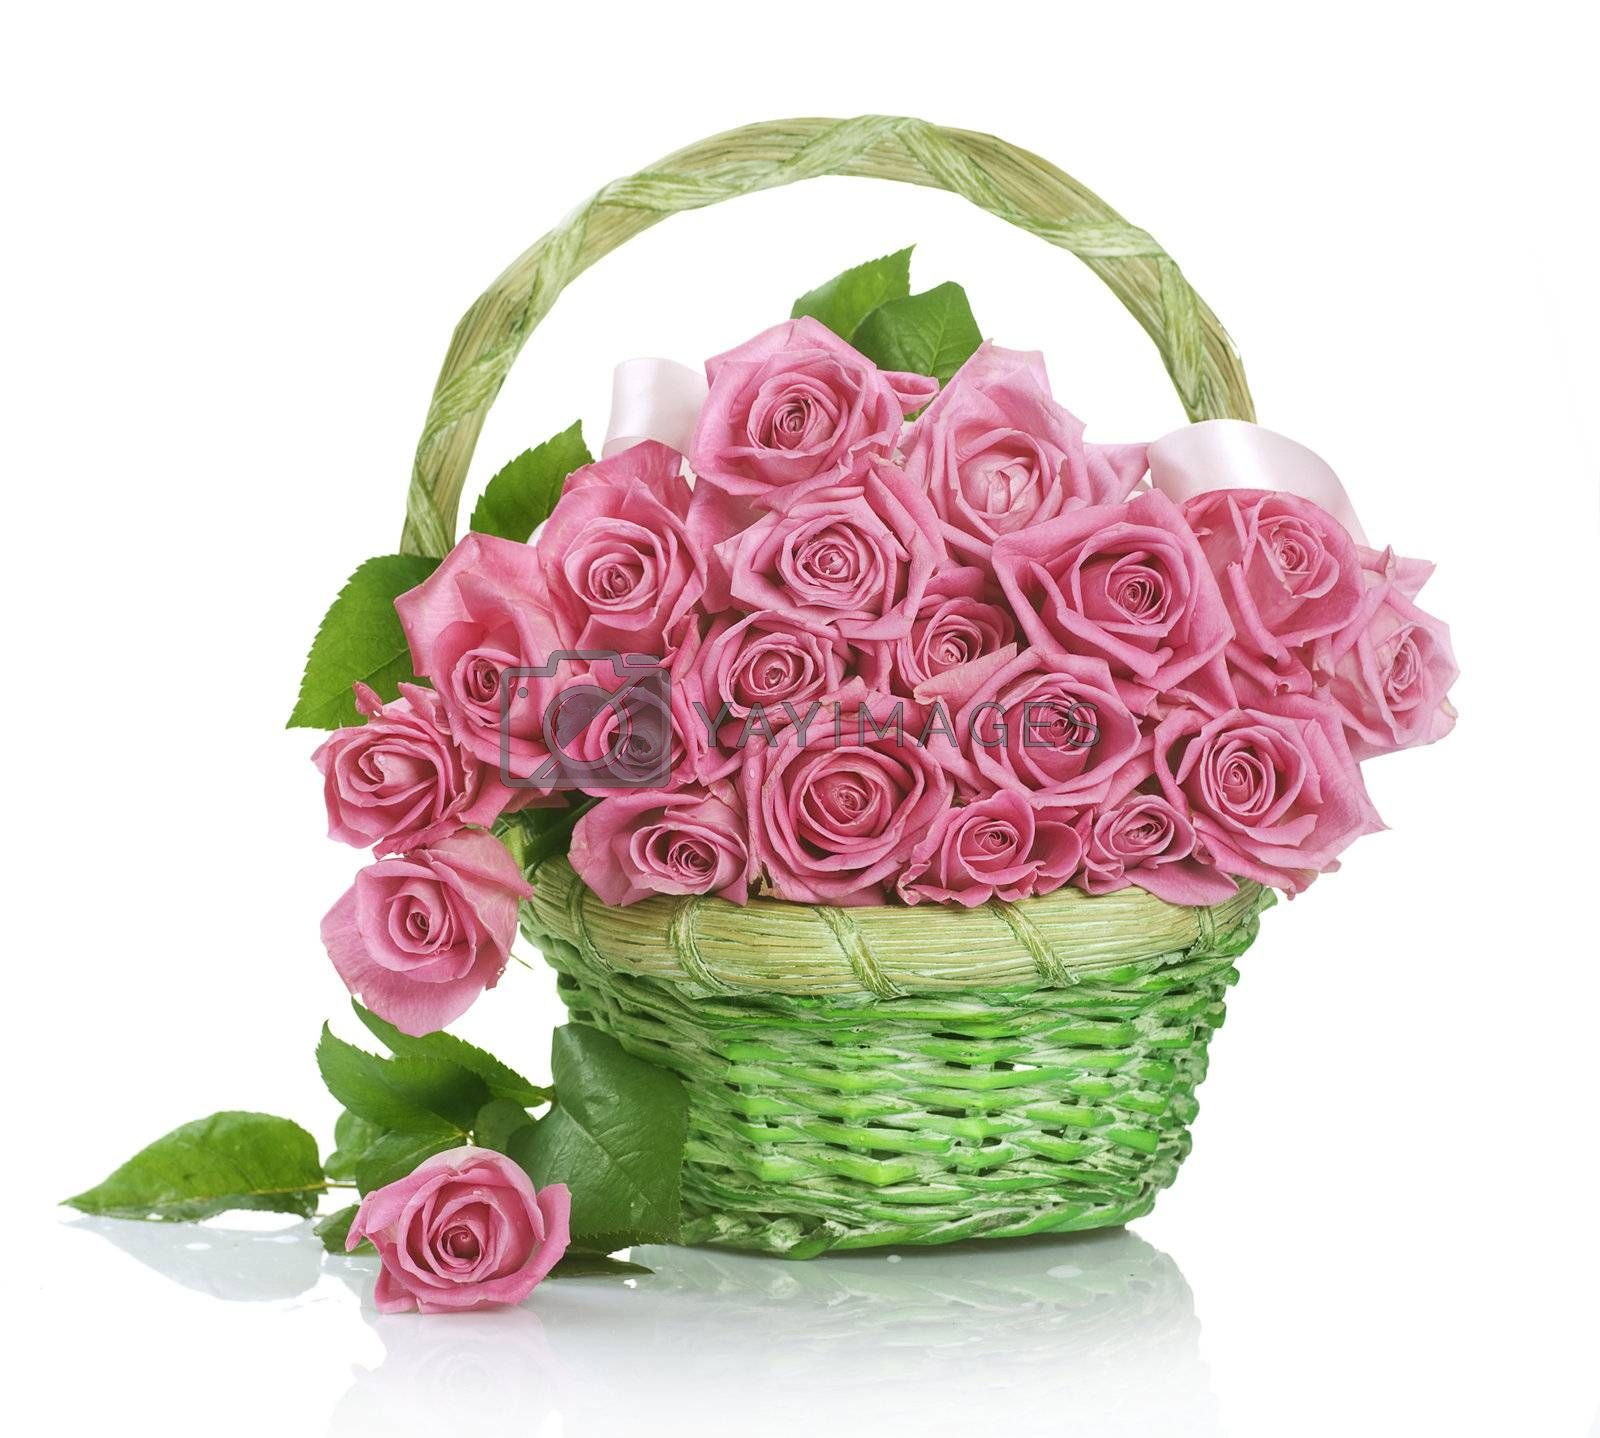 Roses Bunch in the Basket by Subbotina Anna